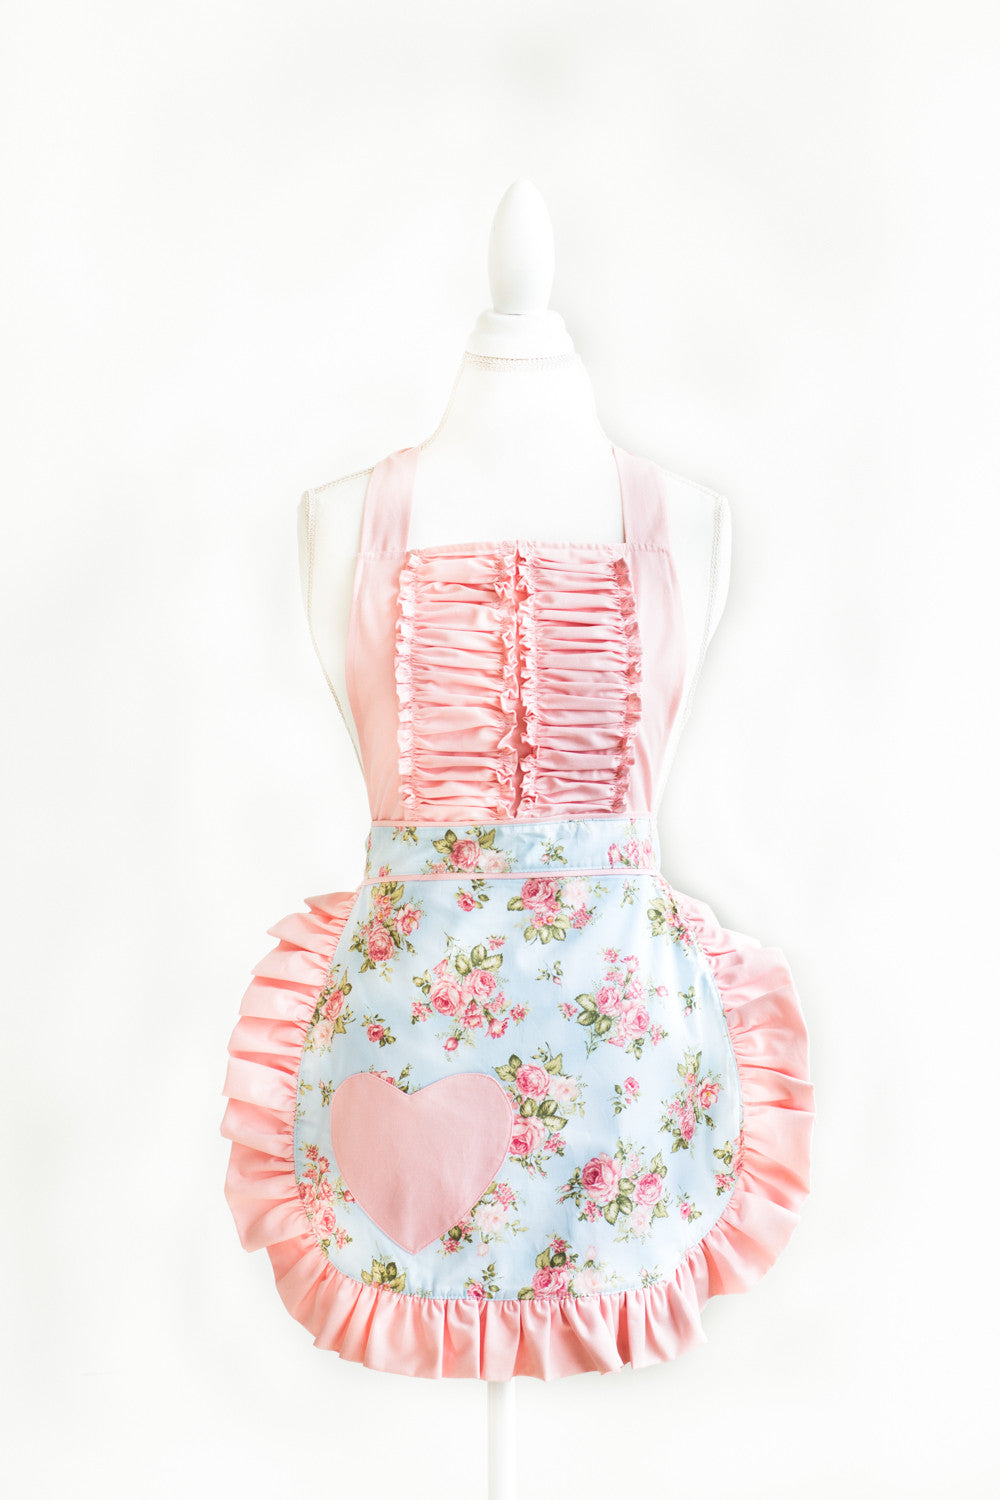 A Vintage Darling Rose in pink (spring vibes)